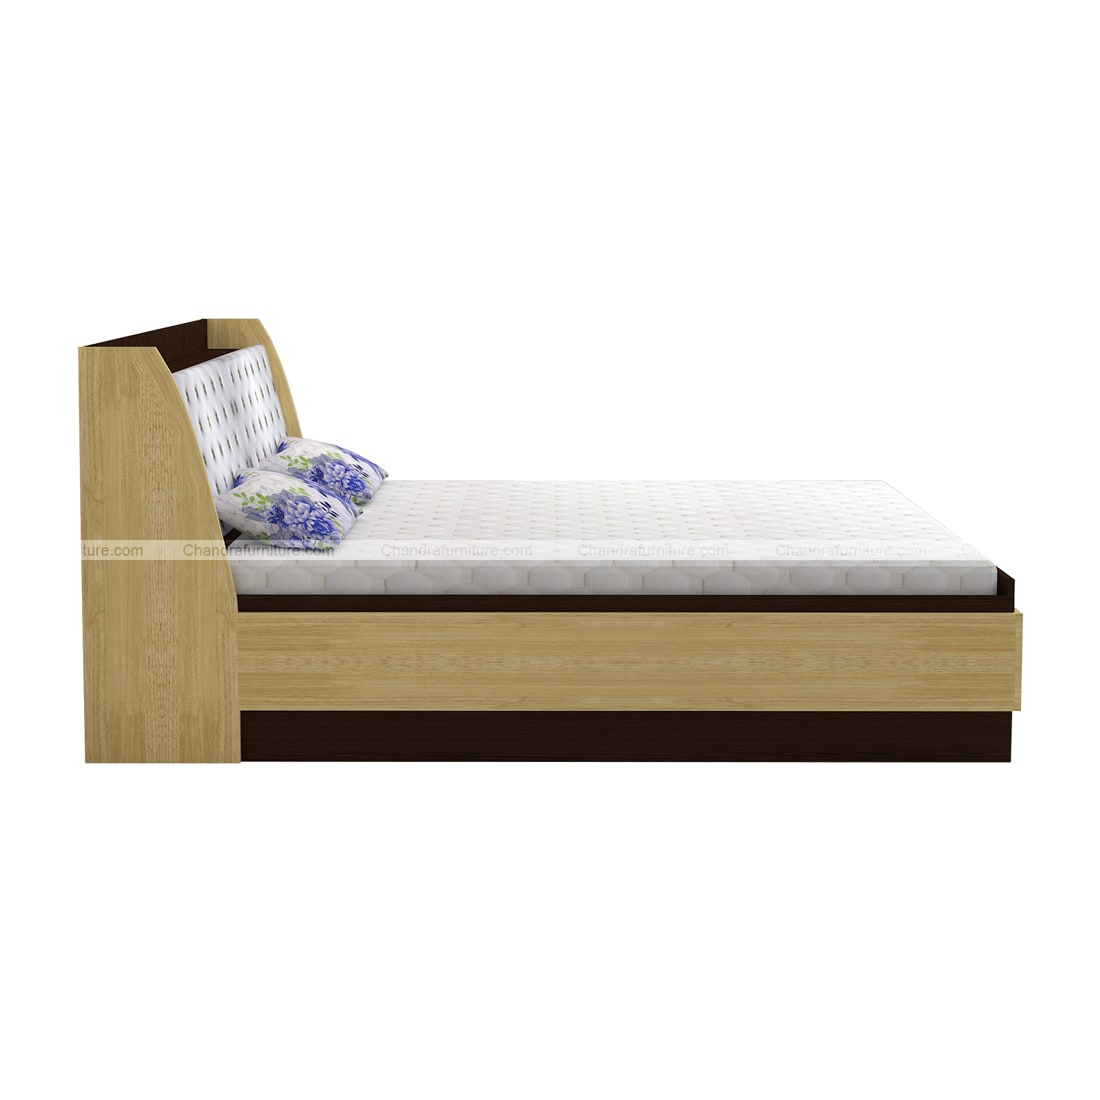 Chandra Furniture King Size Bed - Counter (With Storage In Head Panel )